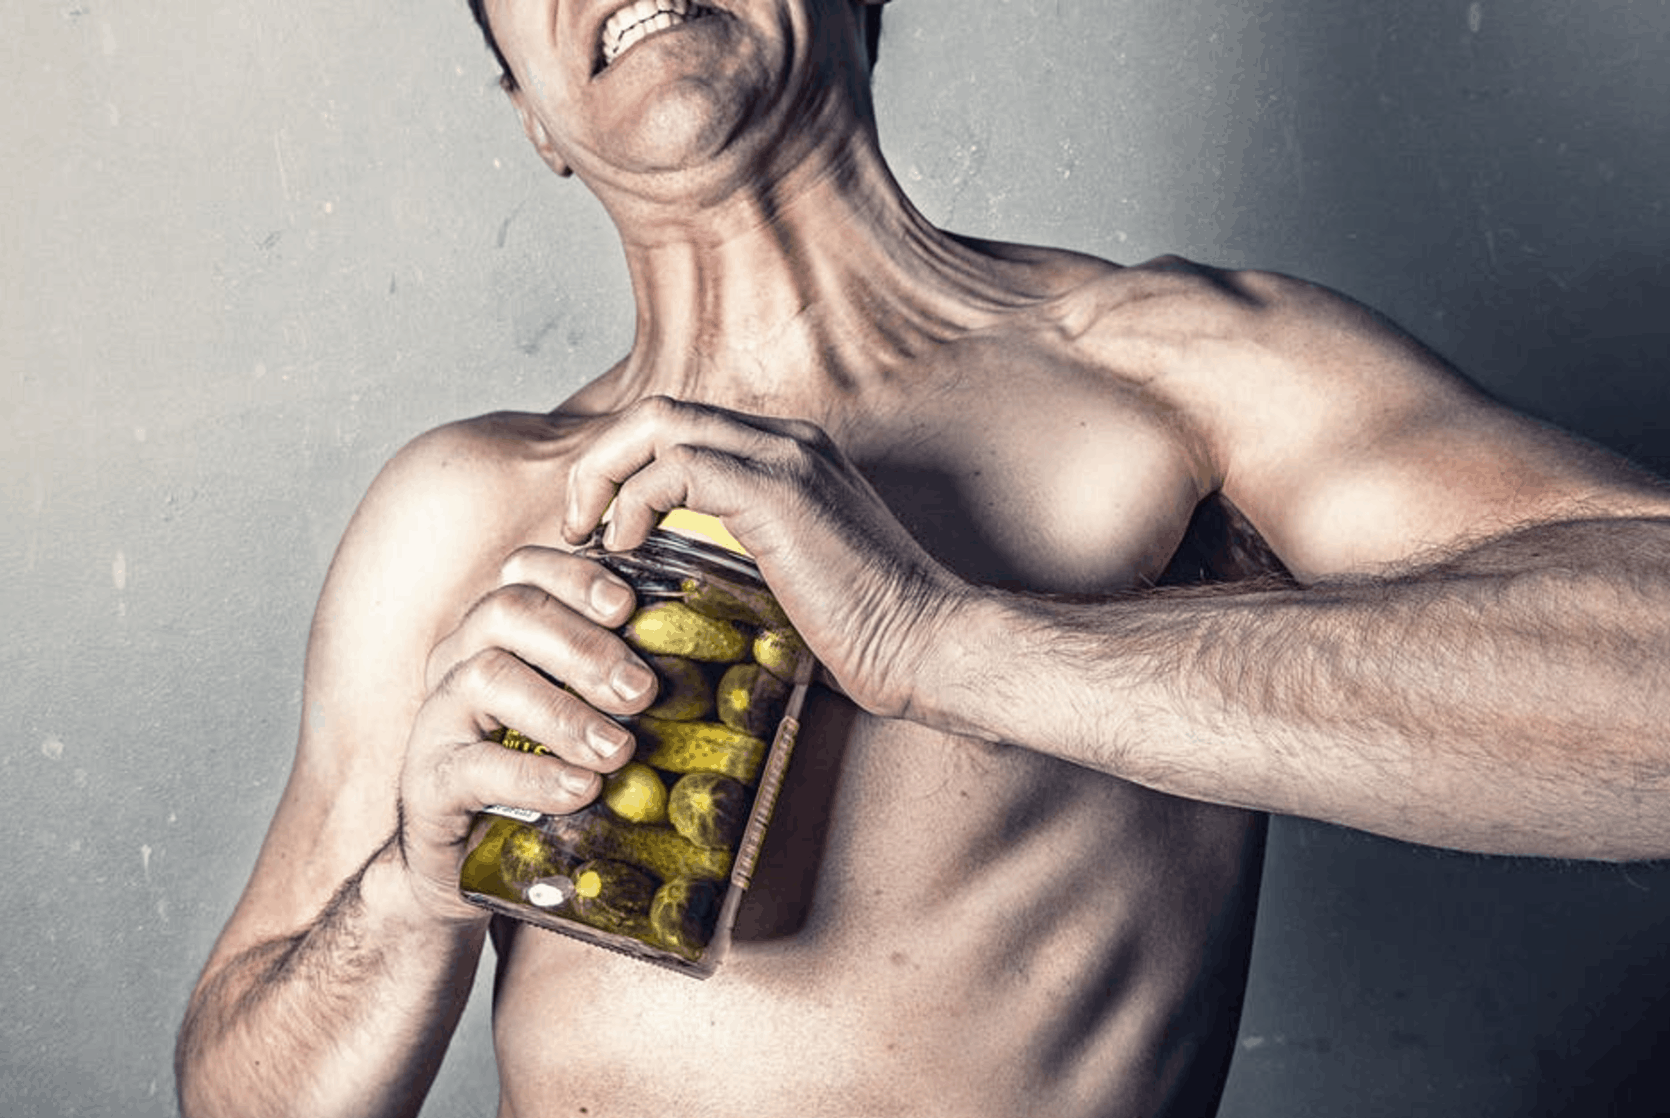 Intermittent Fasting 101: An Effective Way to Lose Fat?